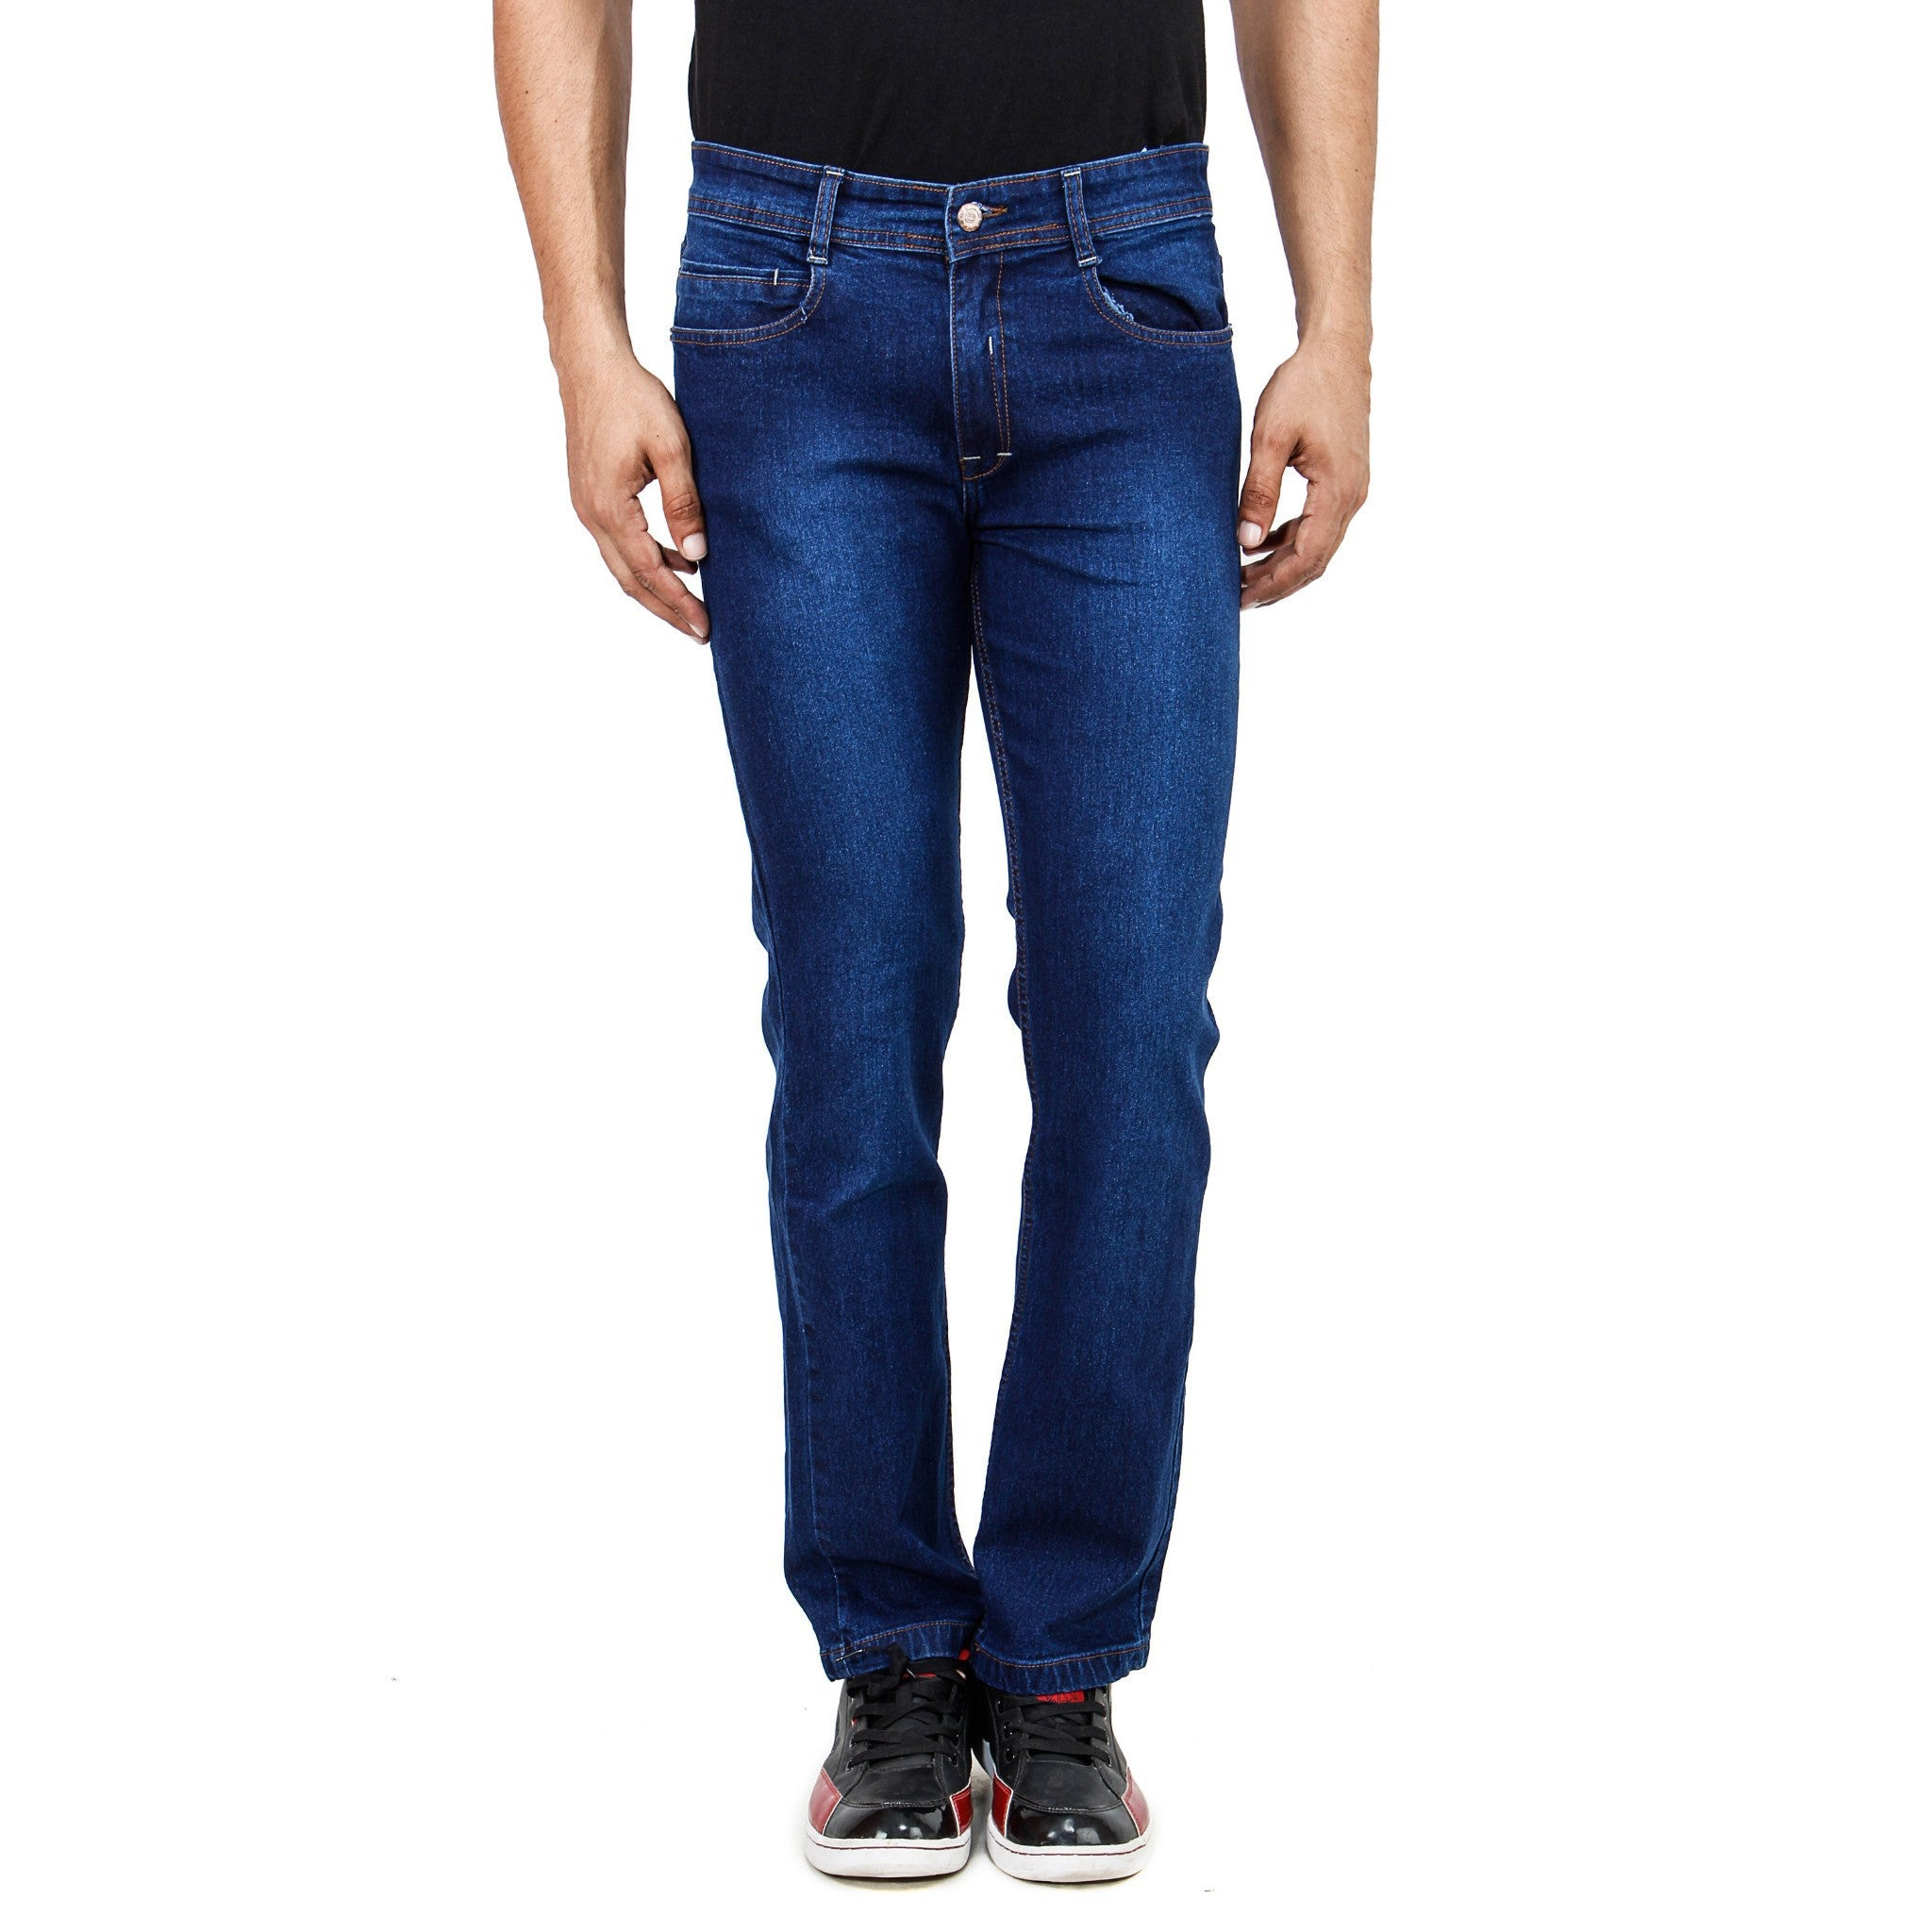 Uber Royal Blue Jeans front view